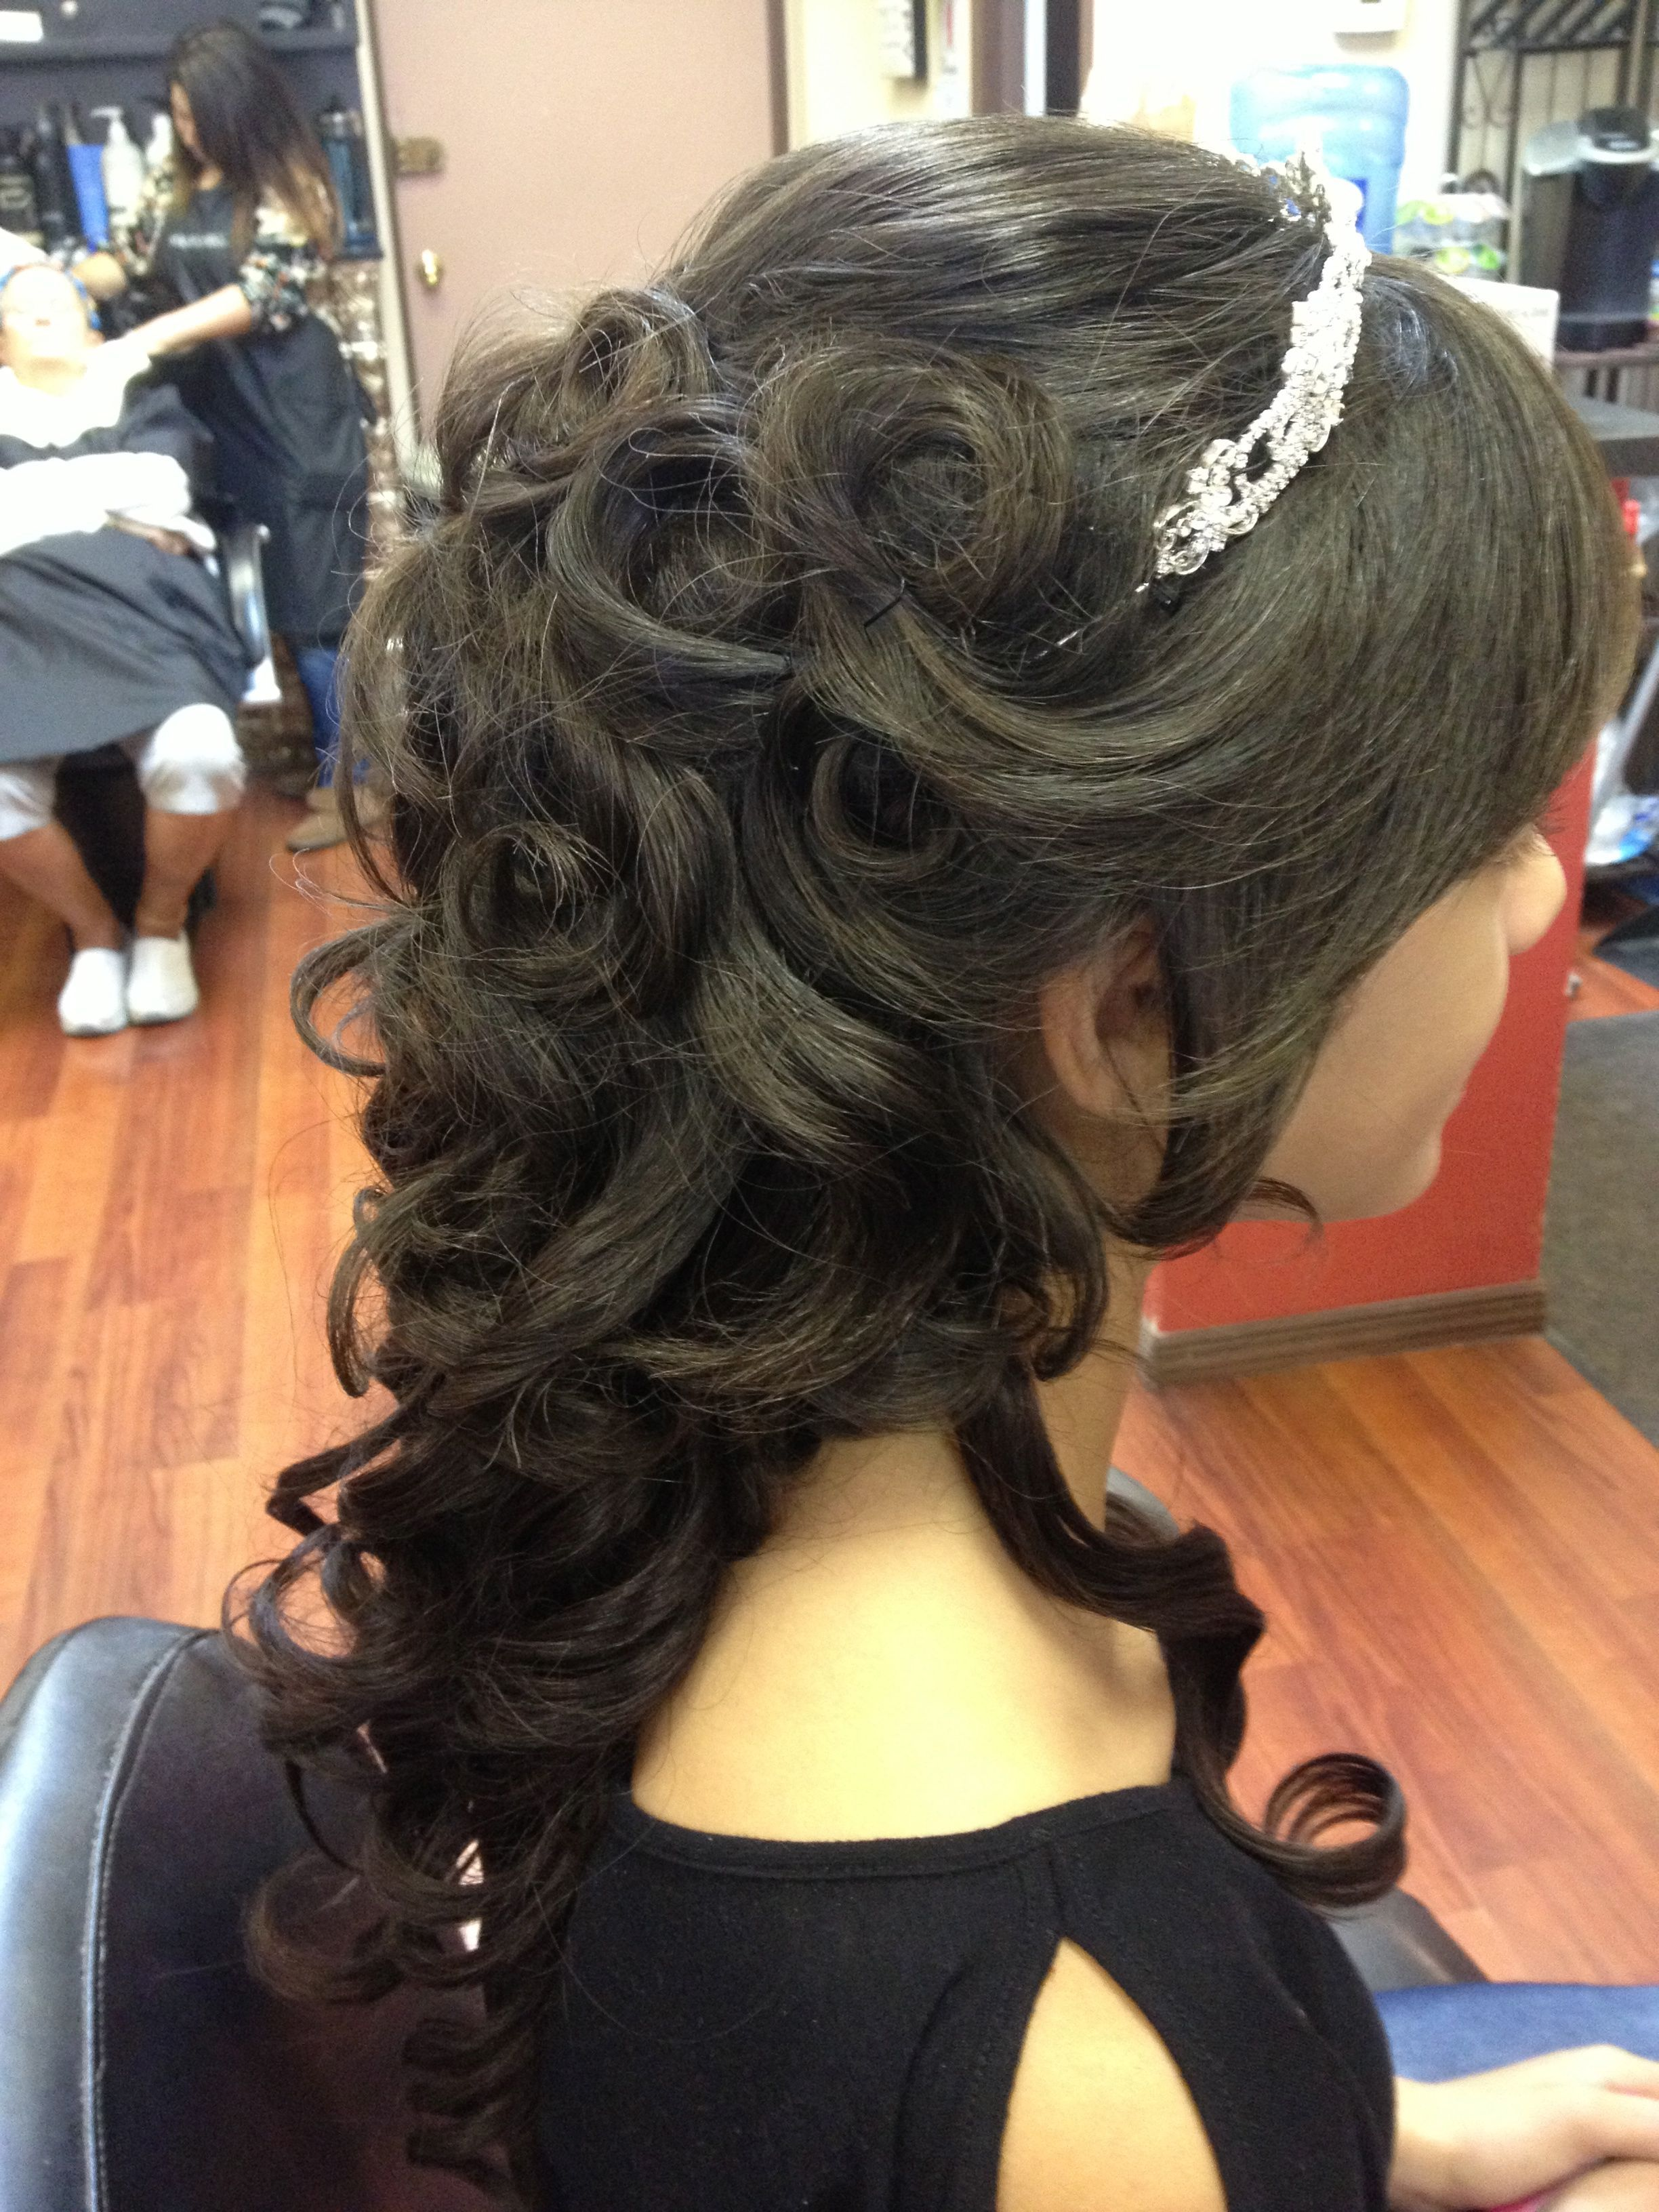 Hairstyles quinceanera with curls and tiara photo best photo